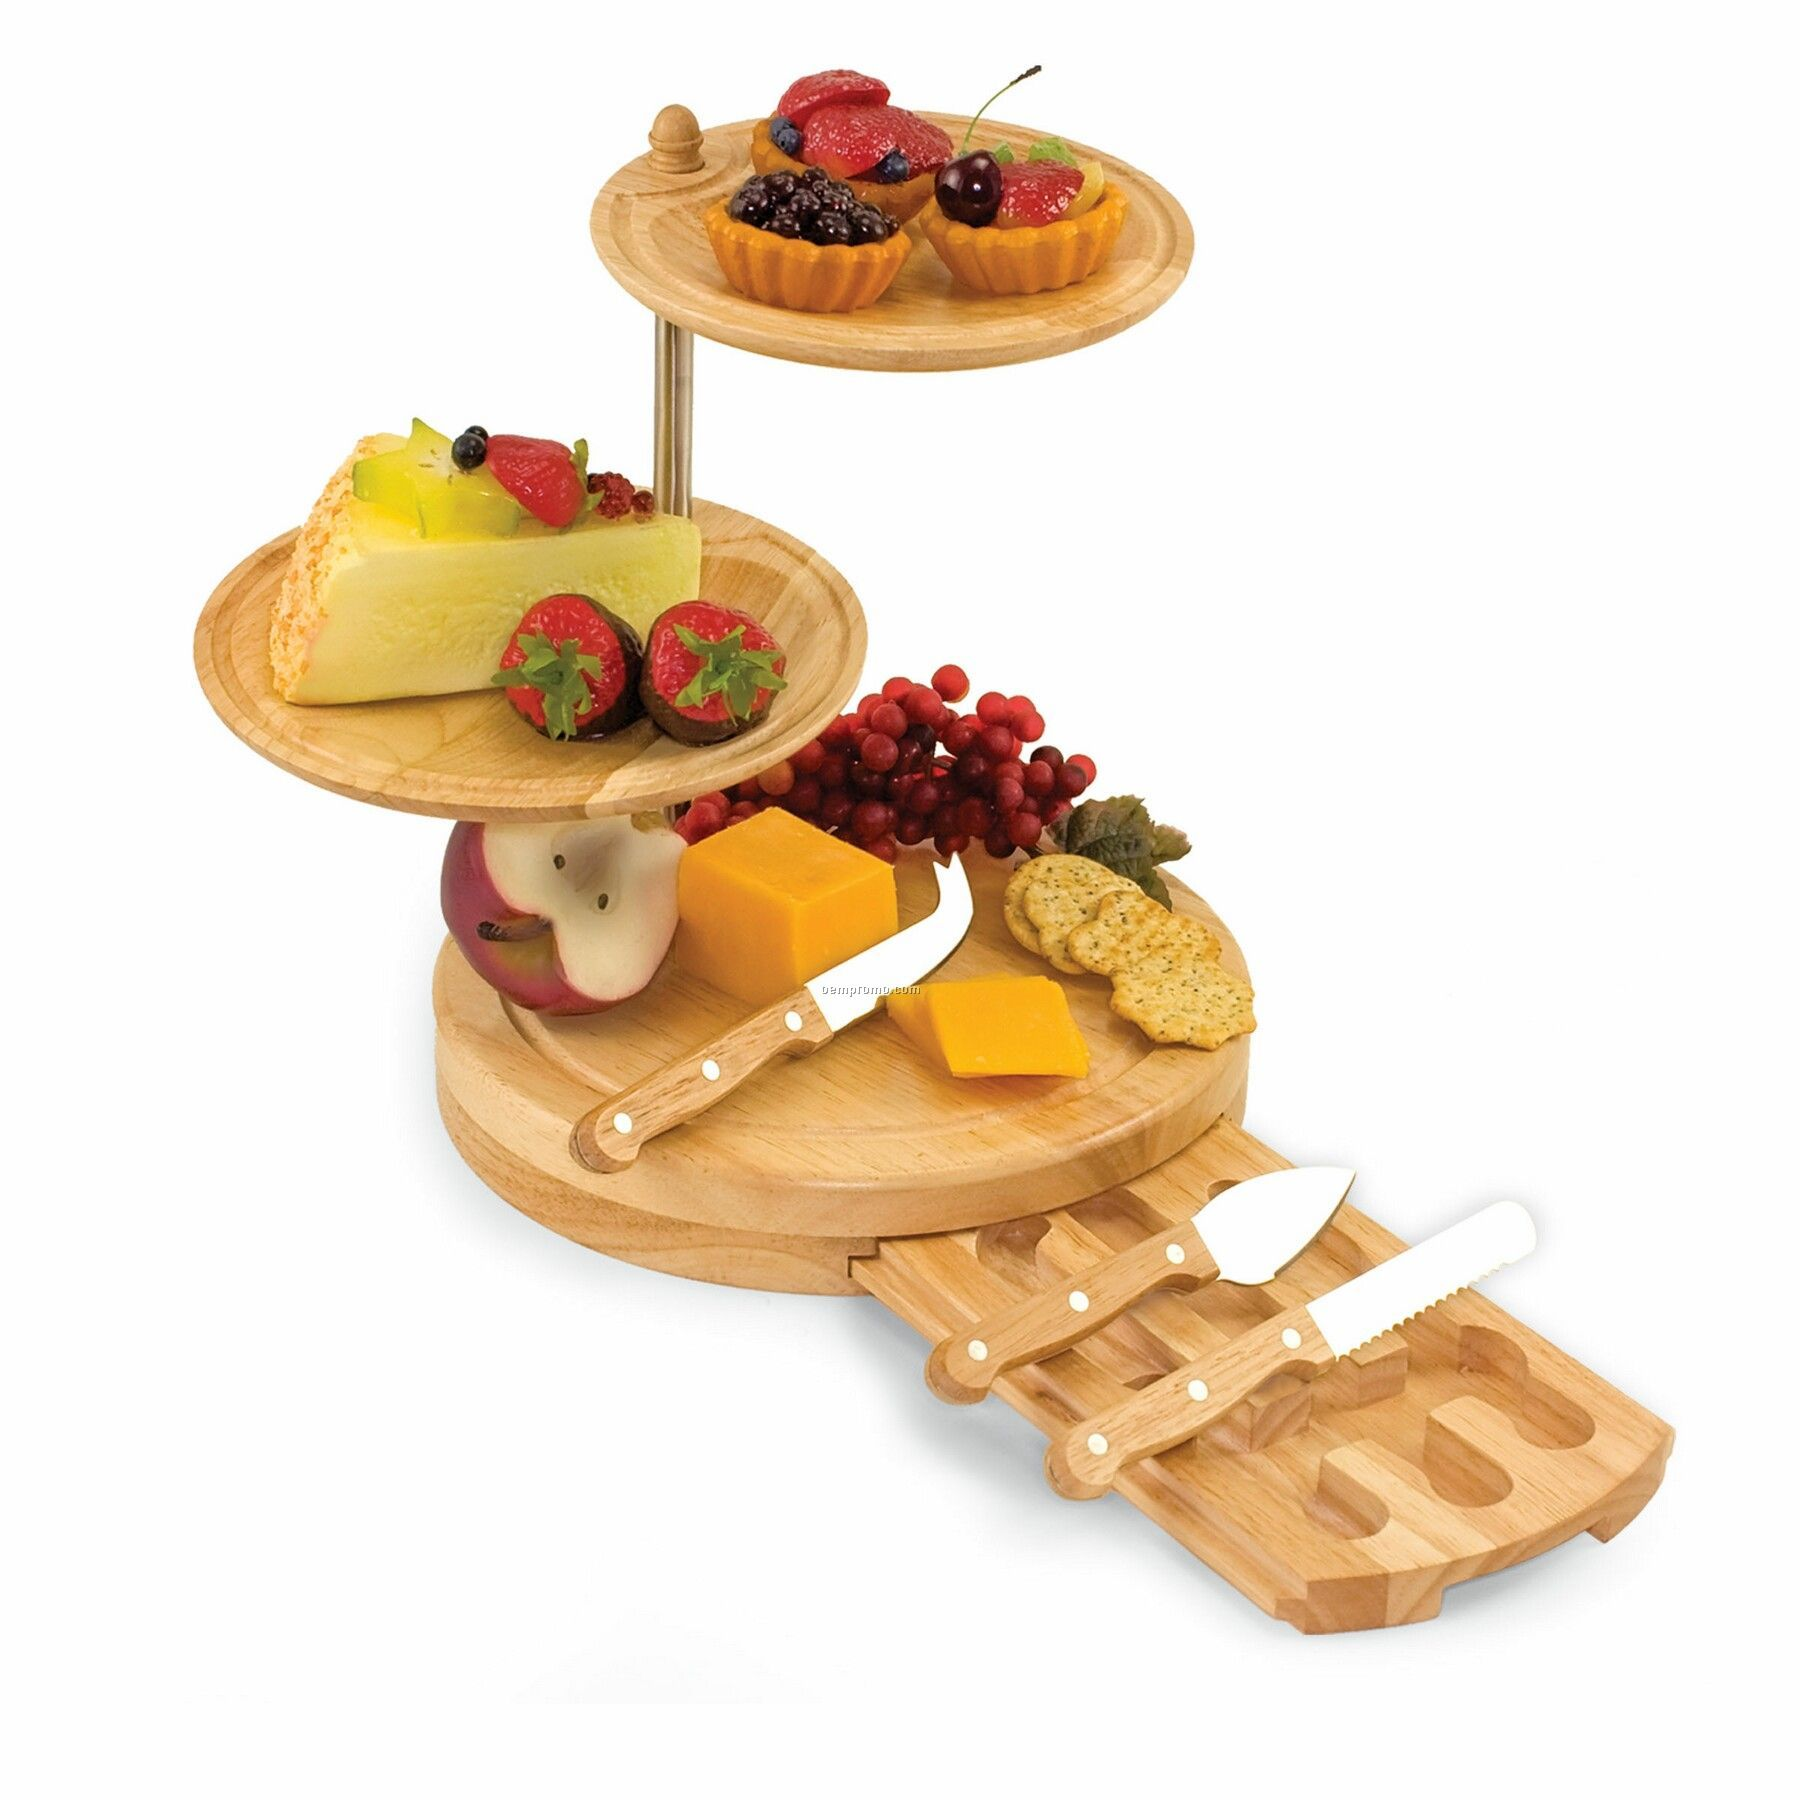 Regalio 3 Tier Wood Serving Tray & Cutting Board W/ 3 Cheese Tools